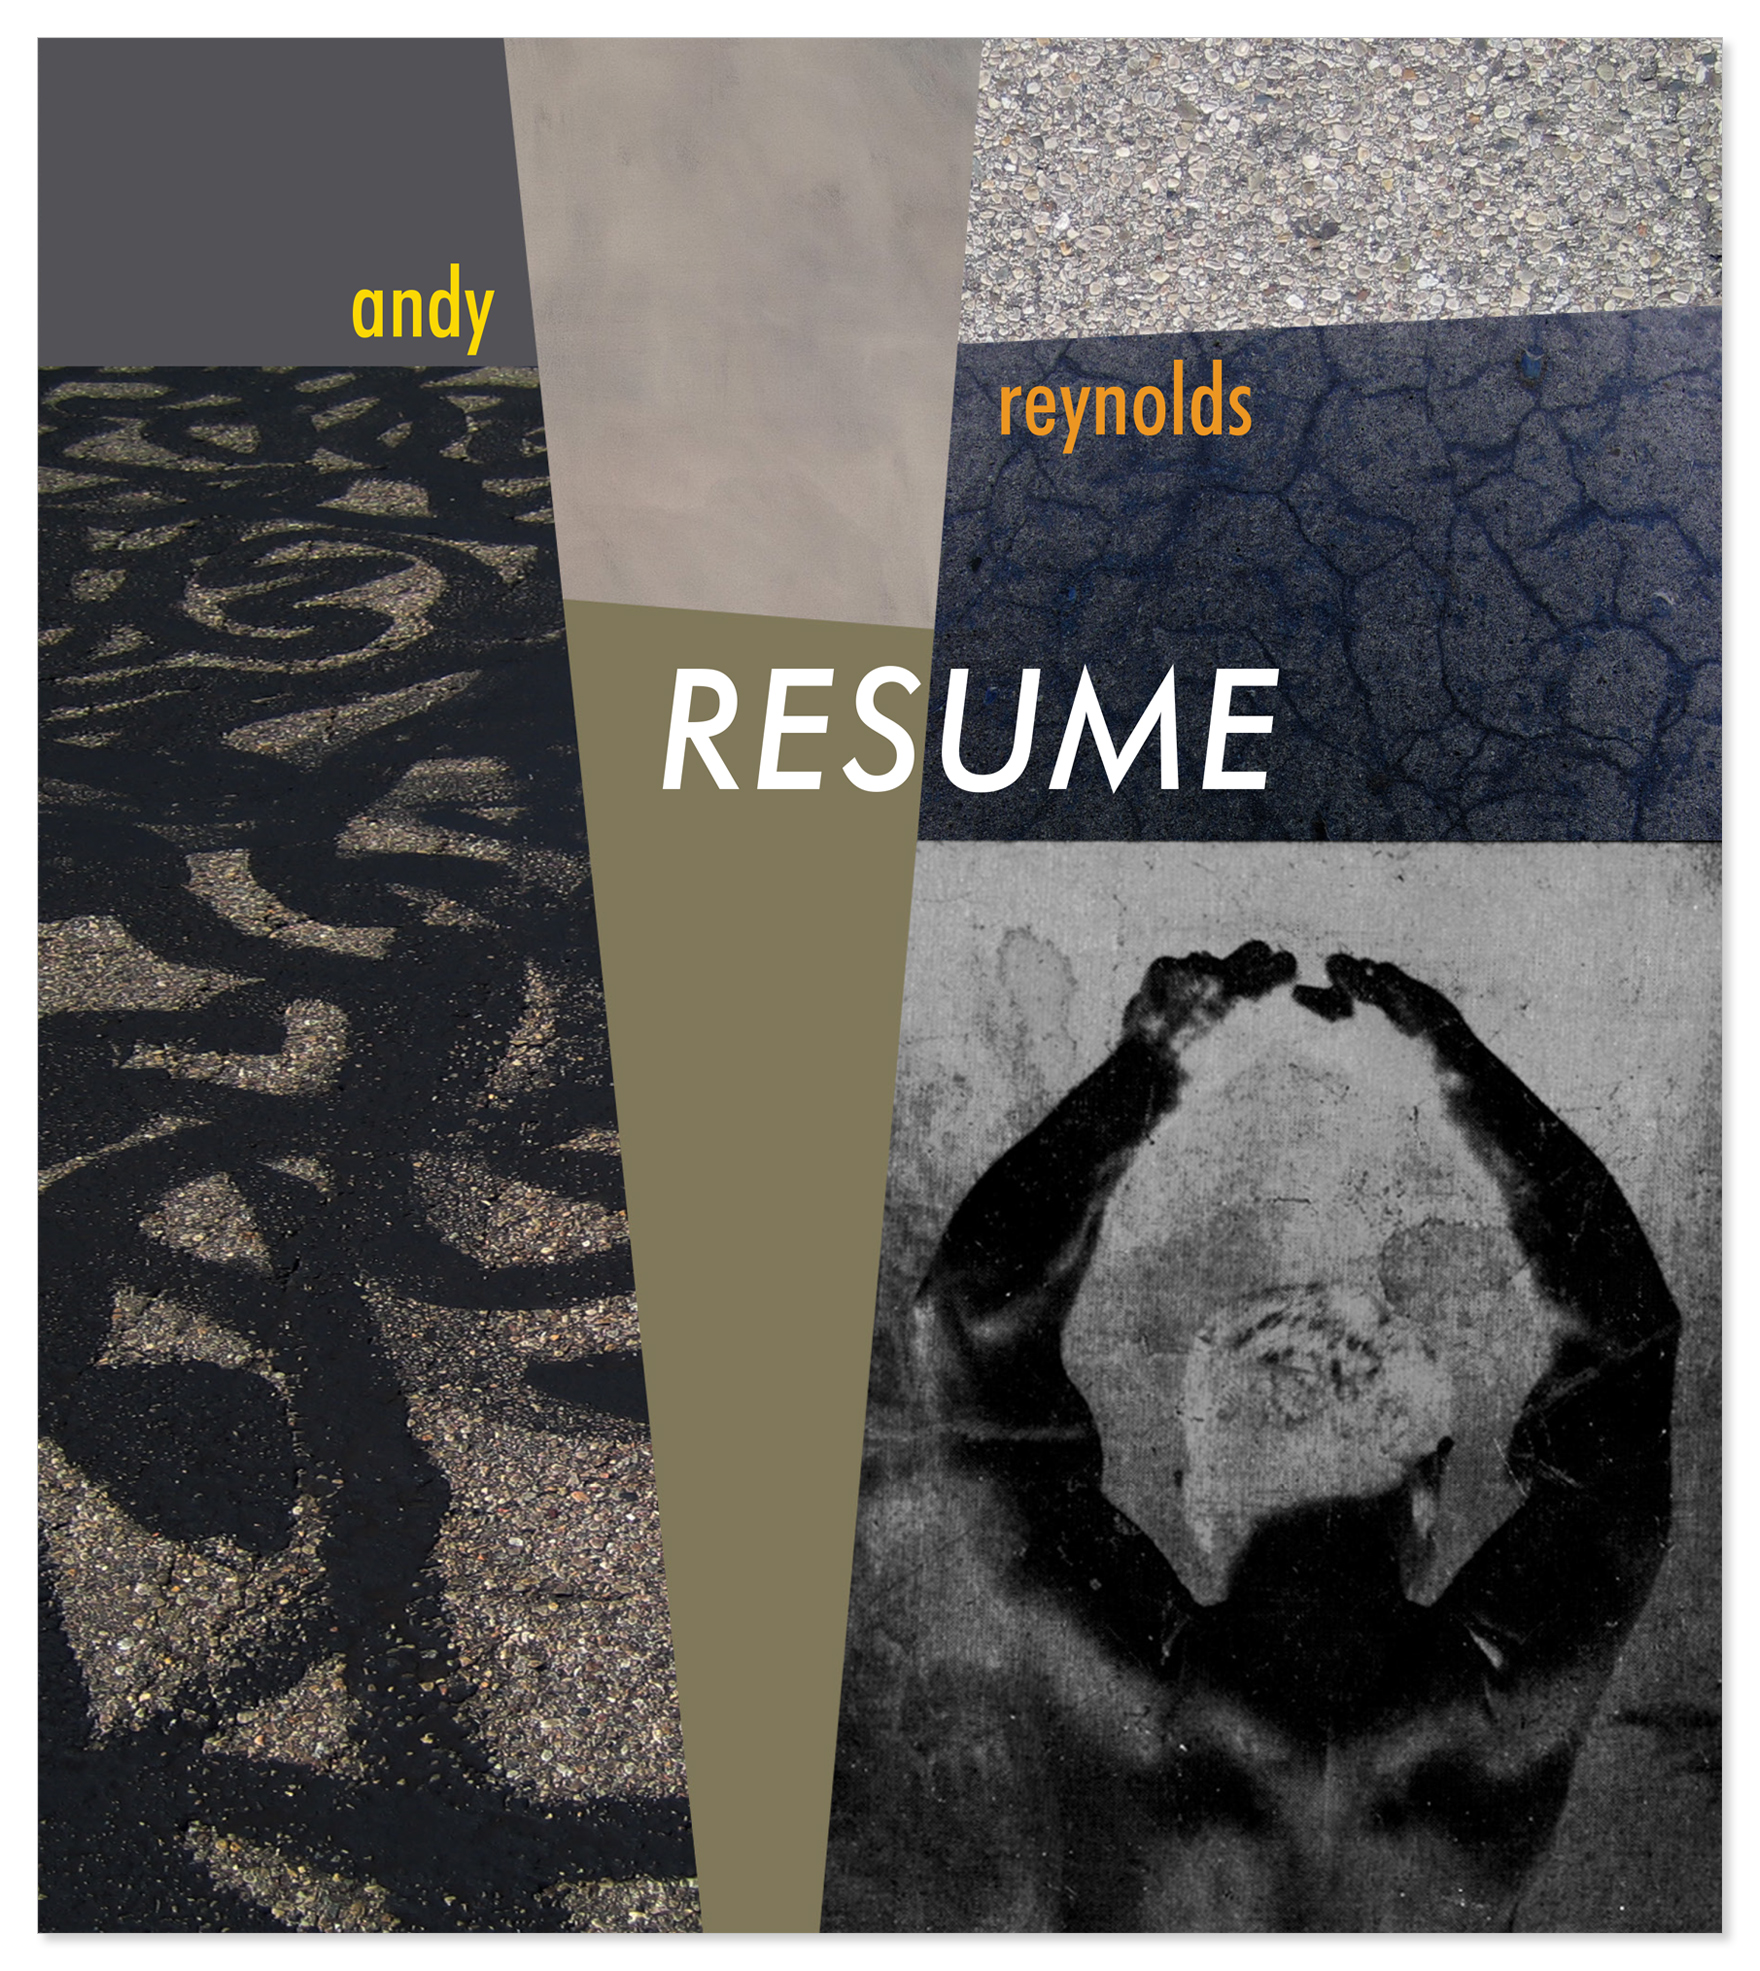 RESUME book front cover